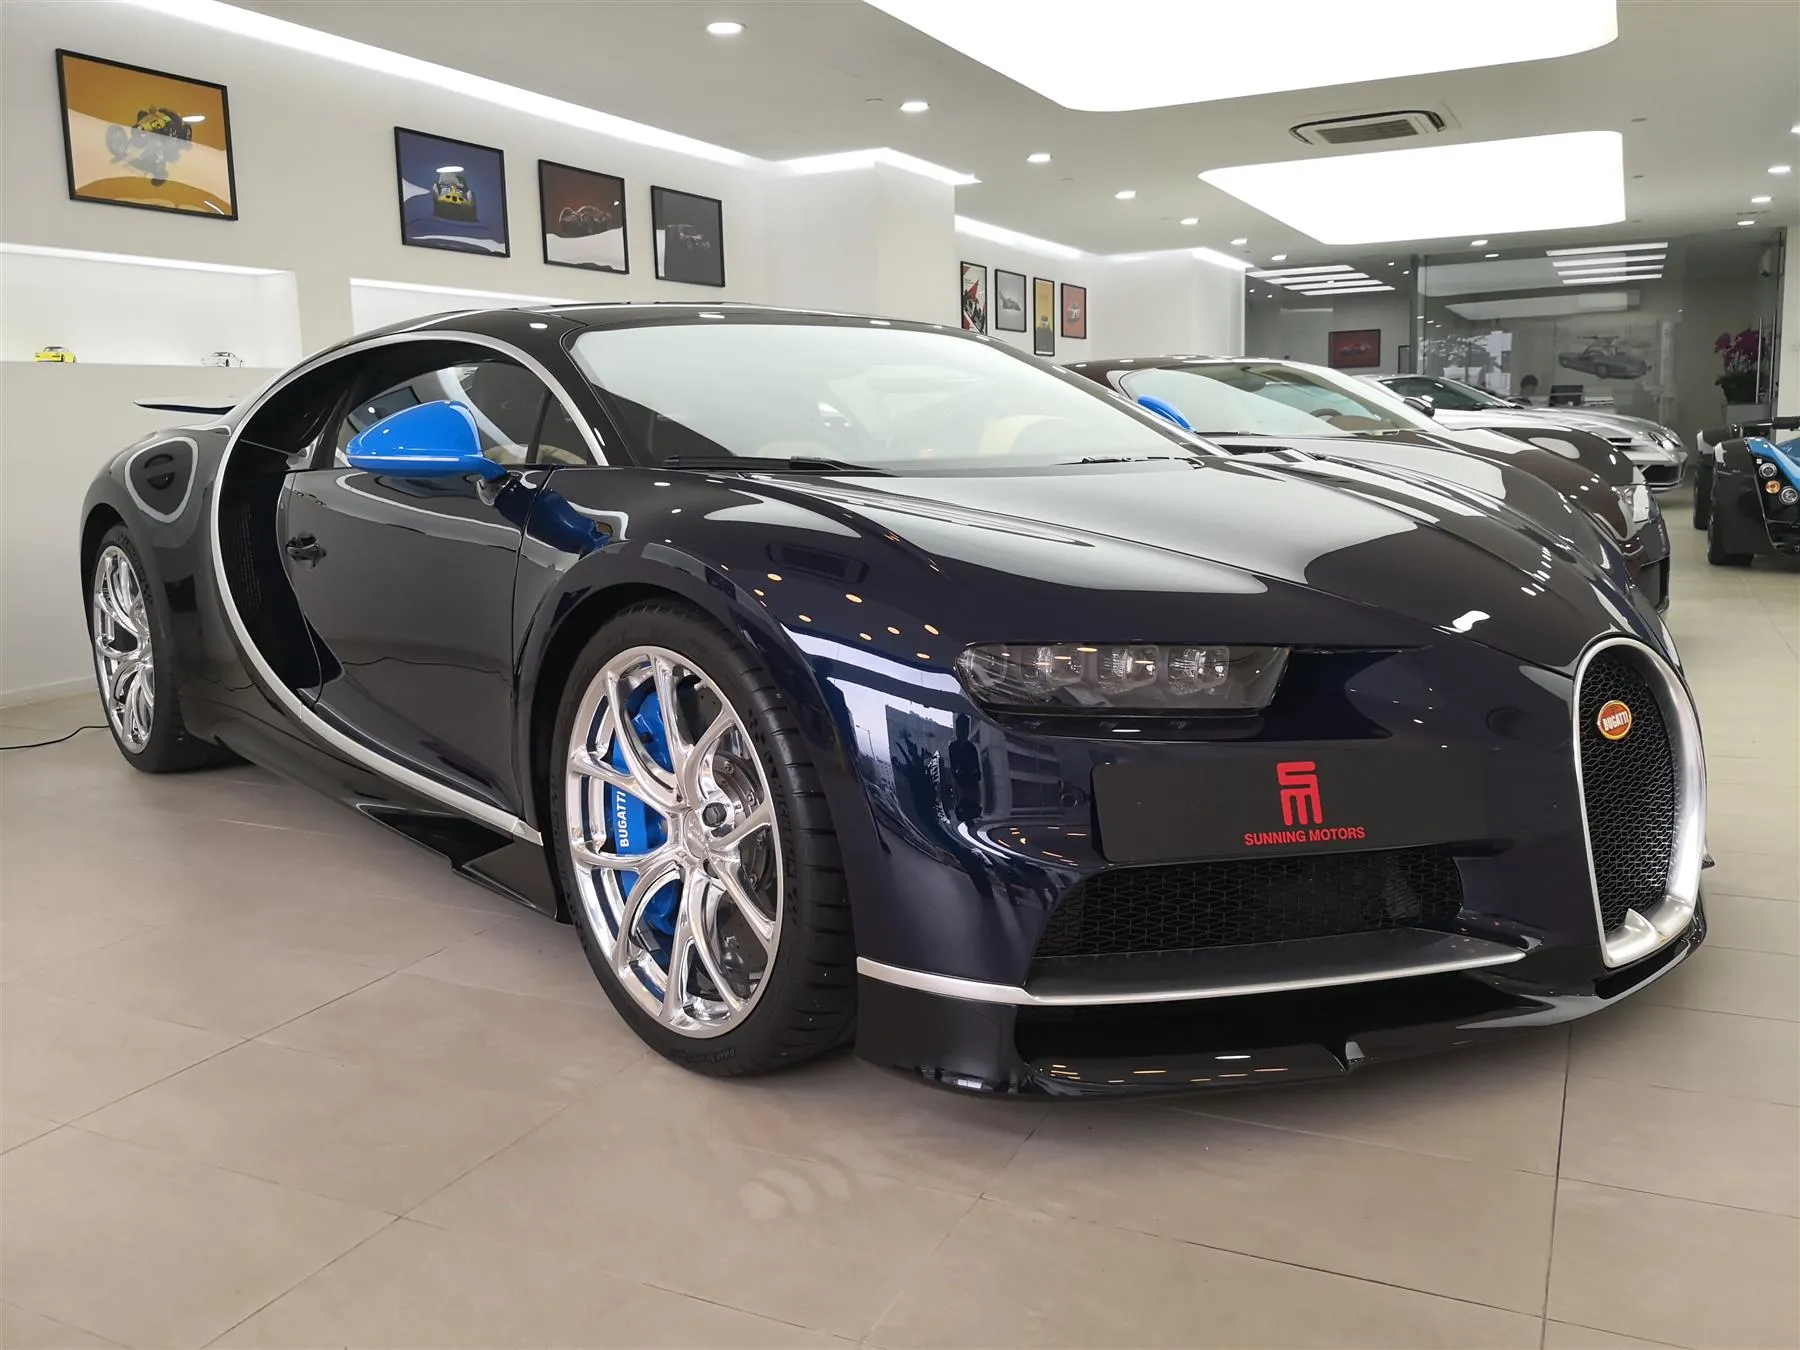 used 2018 bugatti chiron for sale in hong kong | pistonheads